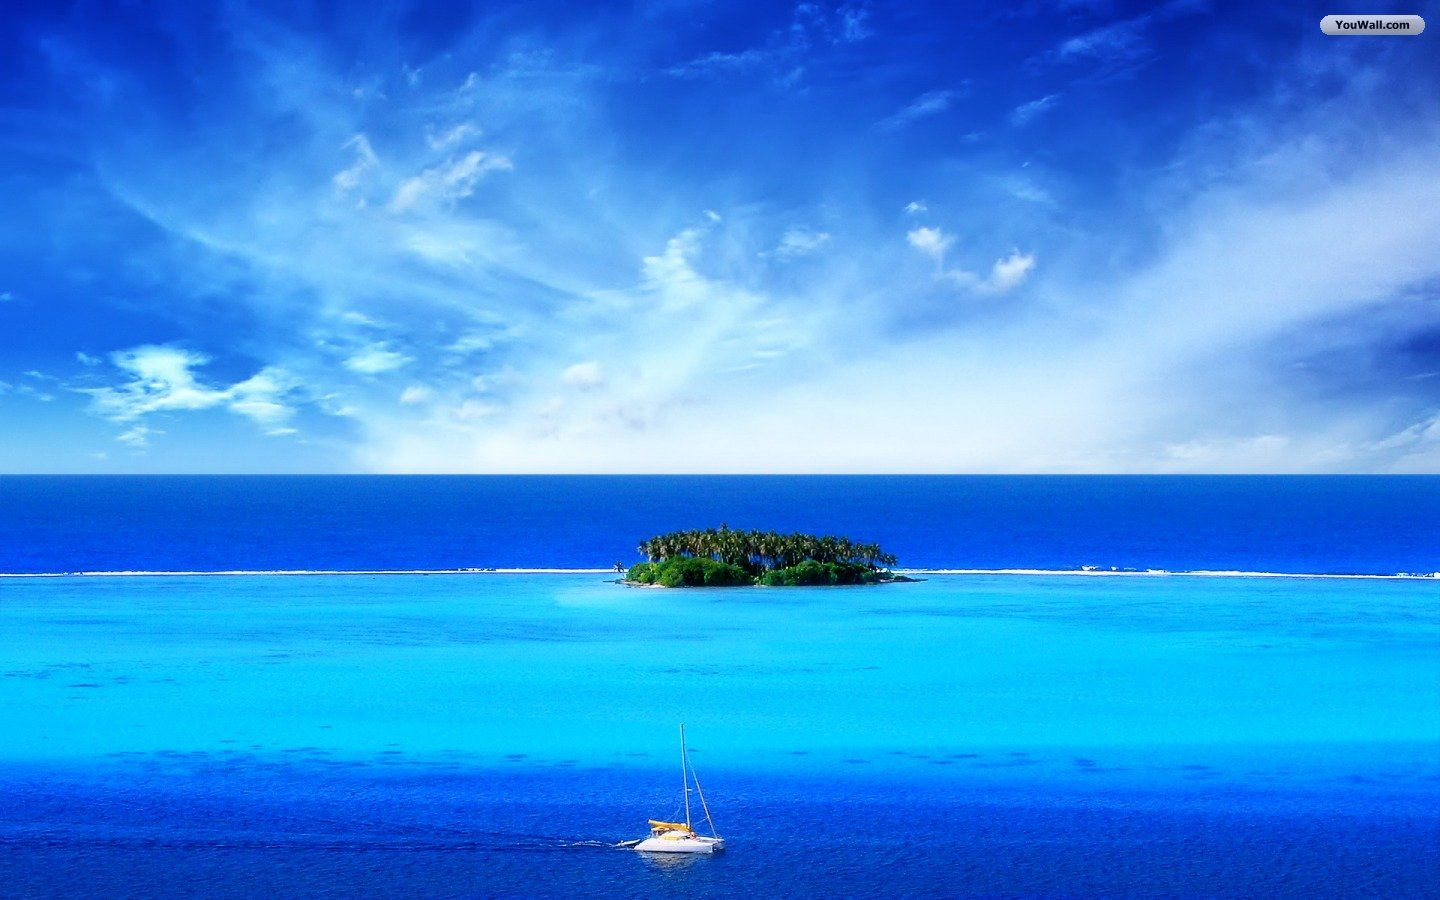 blue sea travel wallpaper hd | wallpapers | pinterest | wallpaper